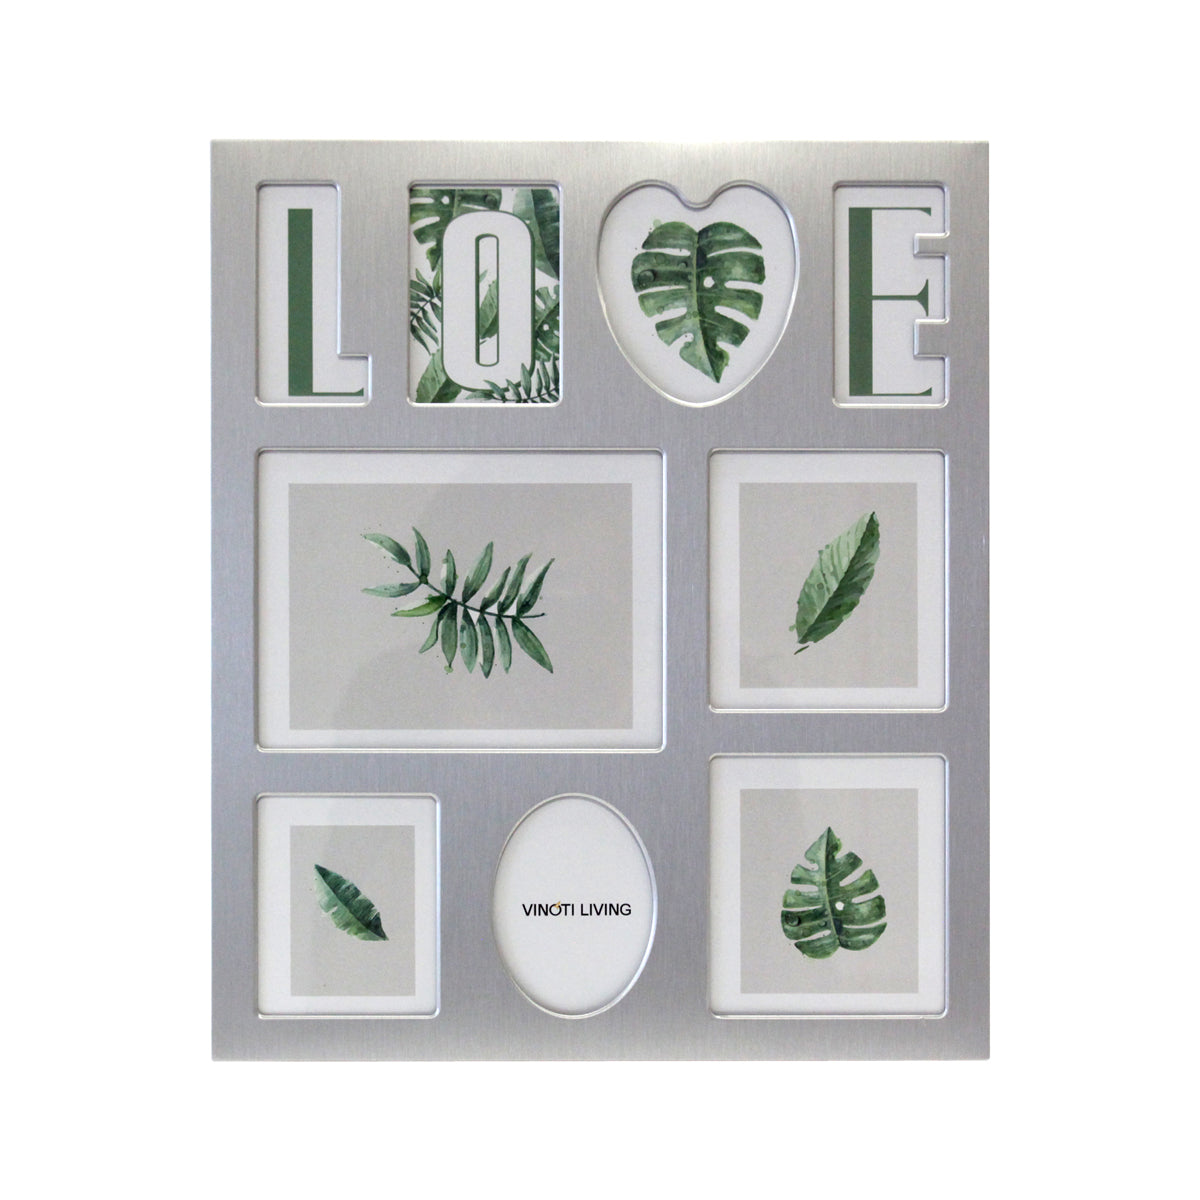 Costa Love Collage Photo Frame - Vinoti Living